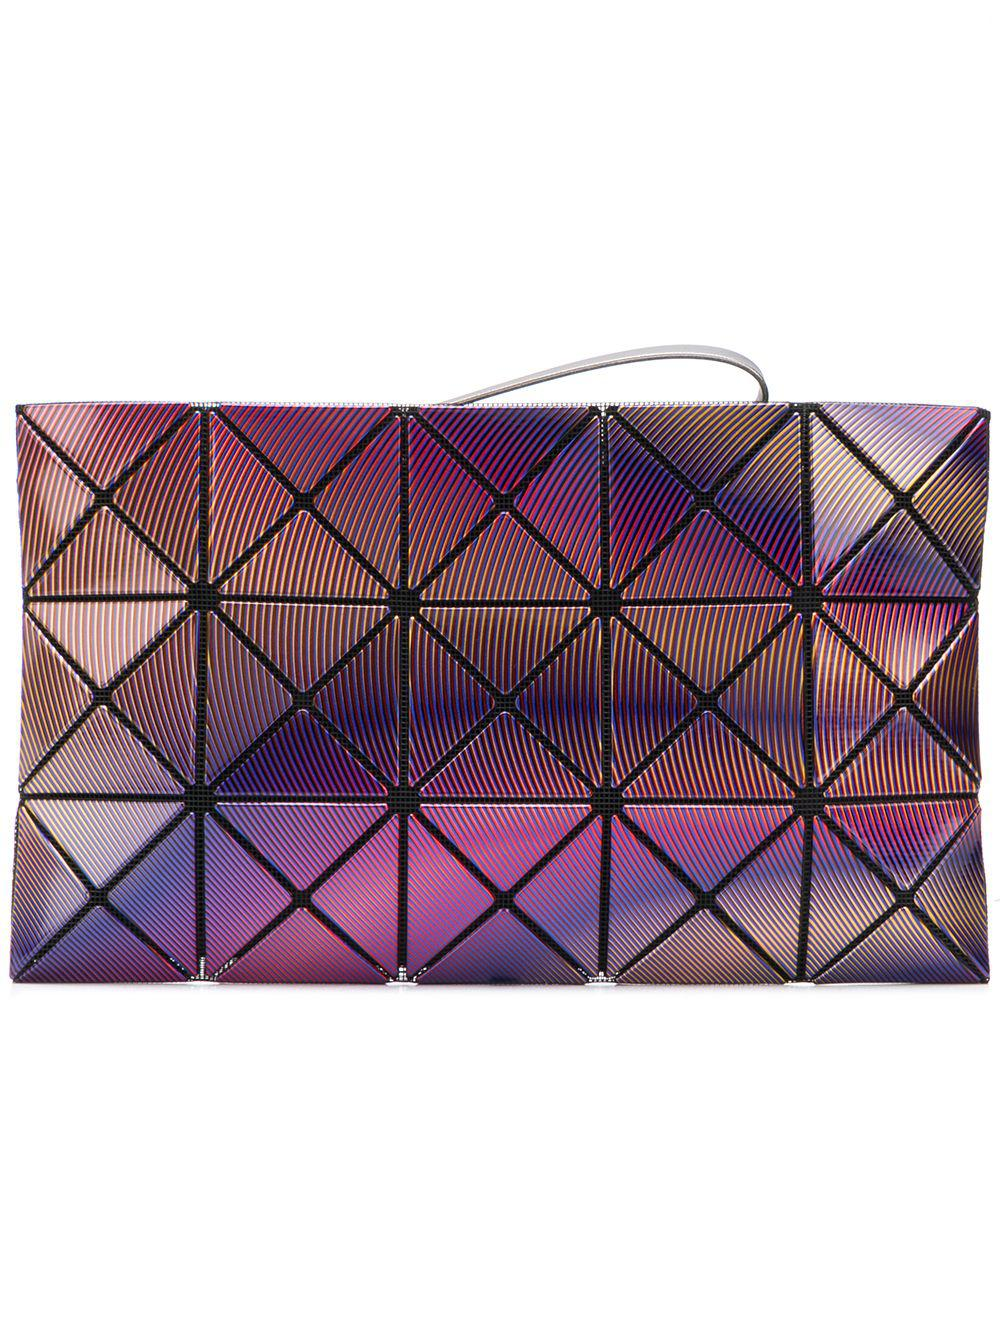 1484929f38 Lyst - Bao Bao Issey Miyake Phase Pouch in Purple